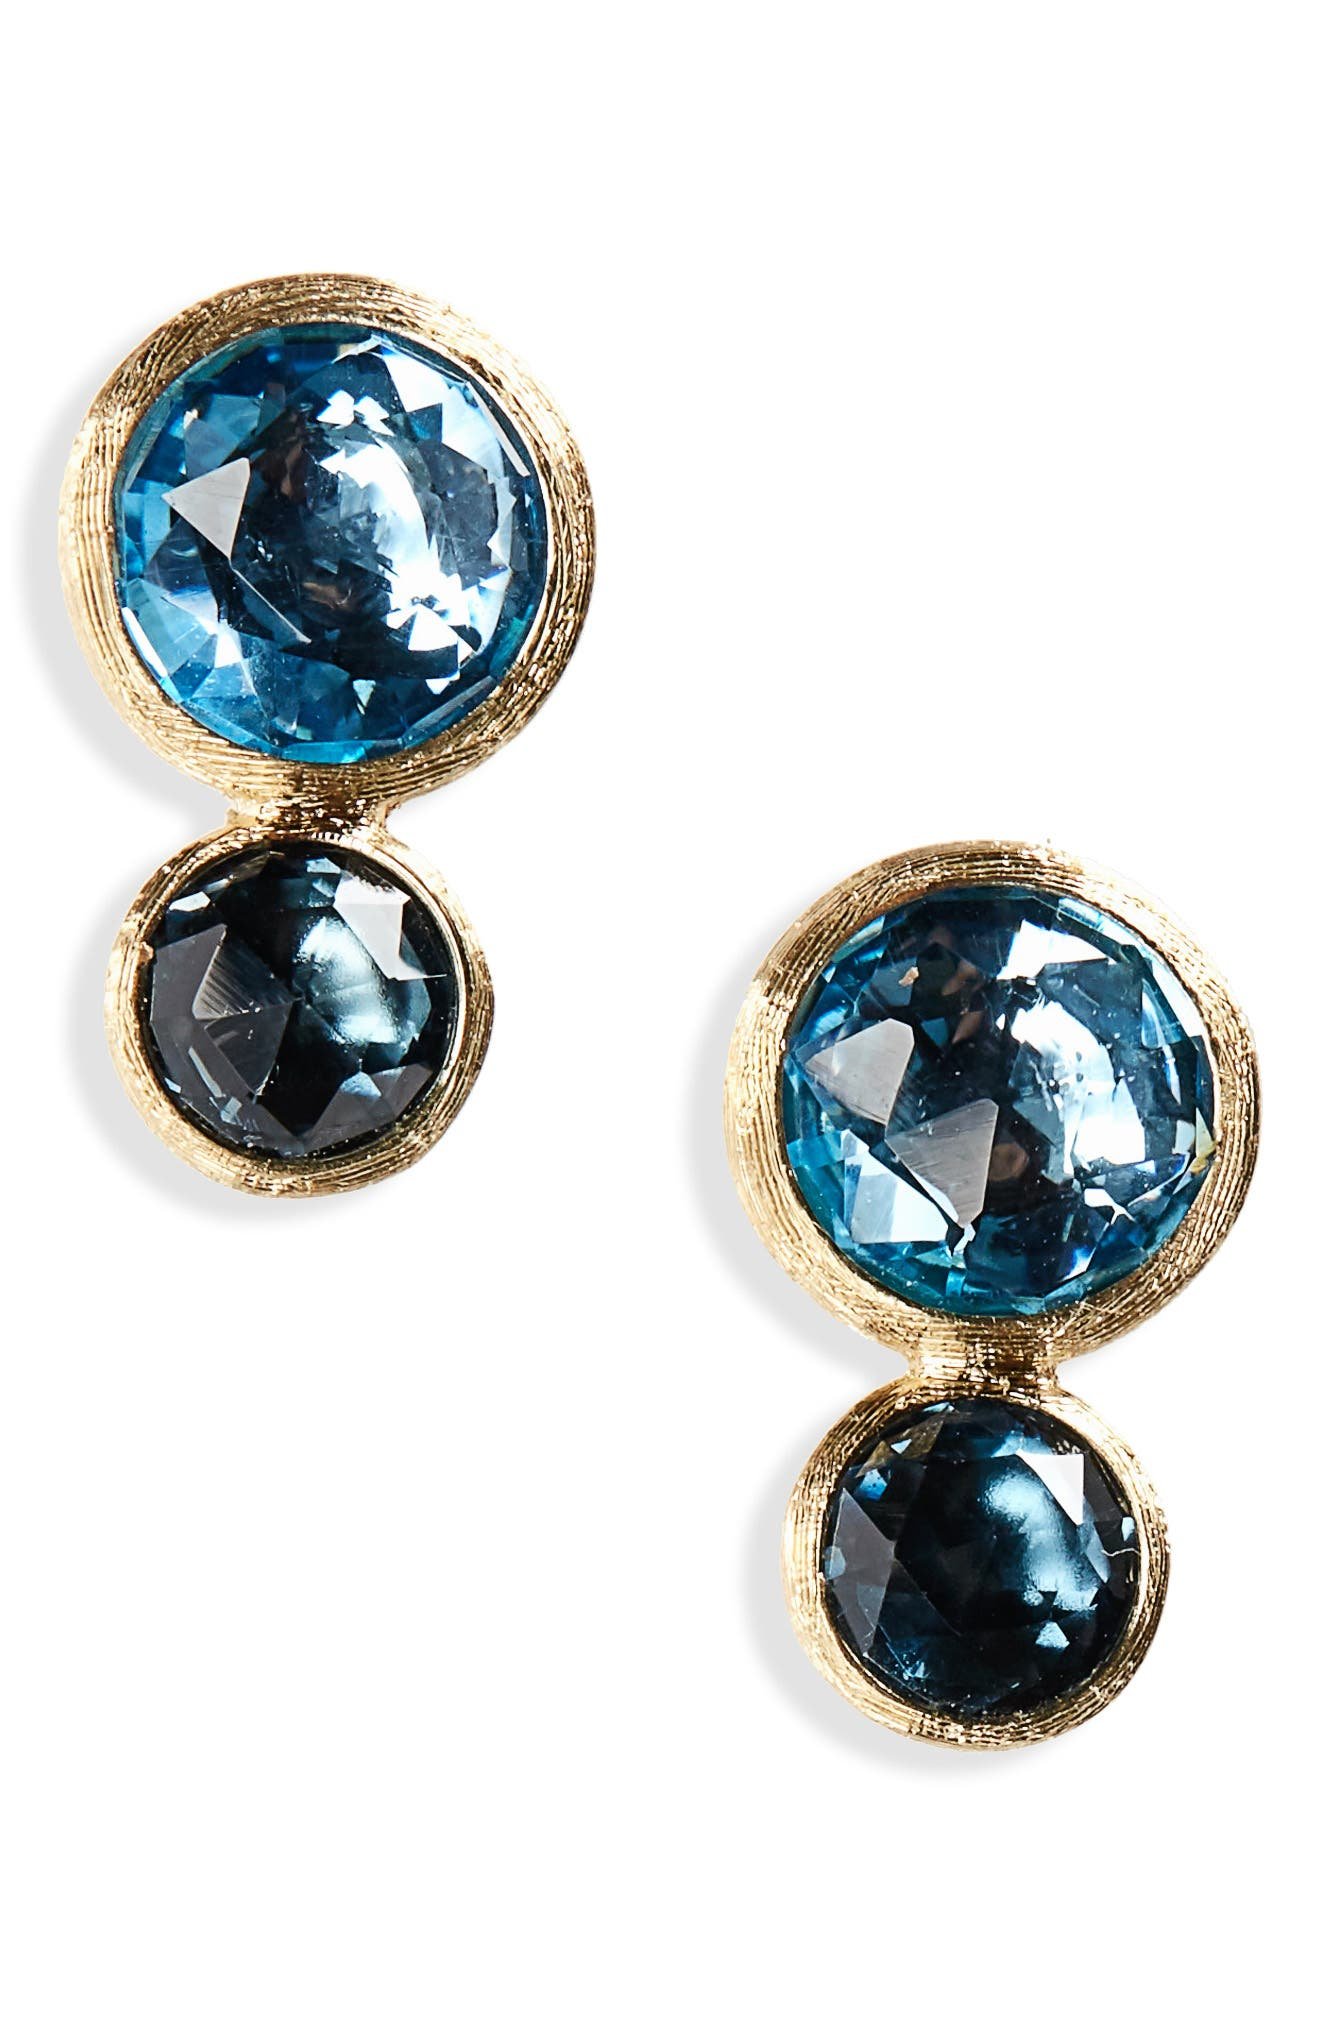 Jaipur 2-Stone Blue Topaz Stud Earrings,                             Main thumbnail 1, color,                             710